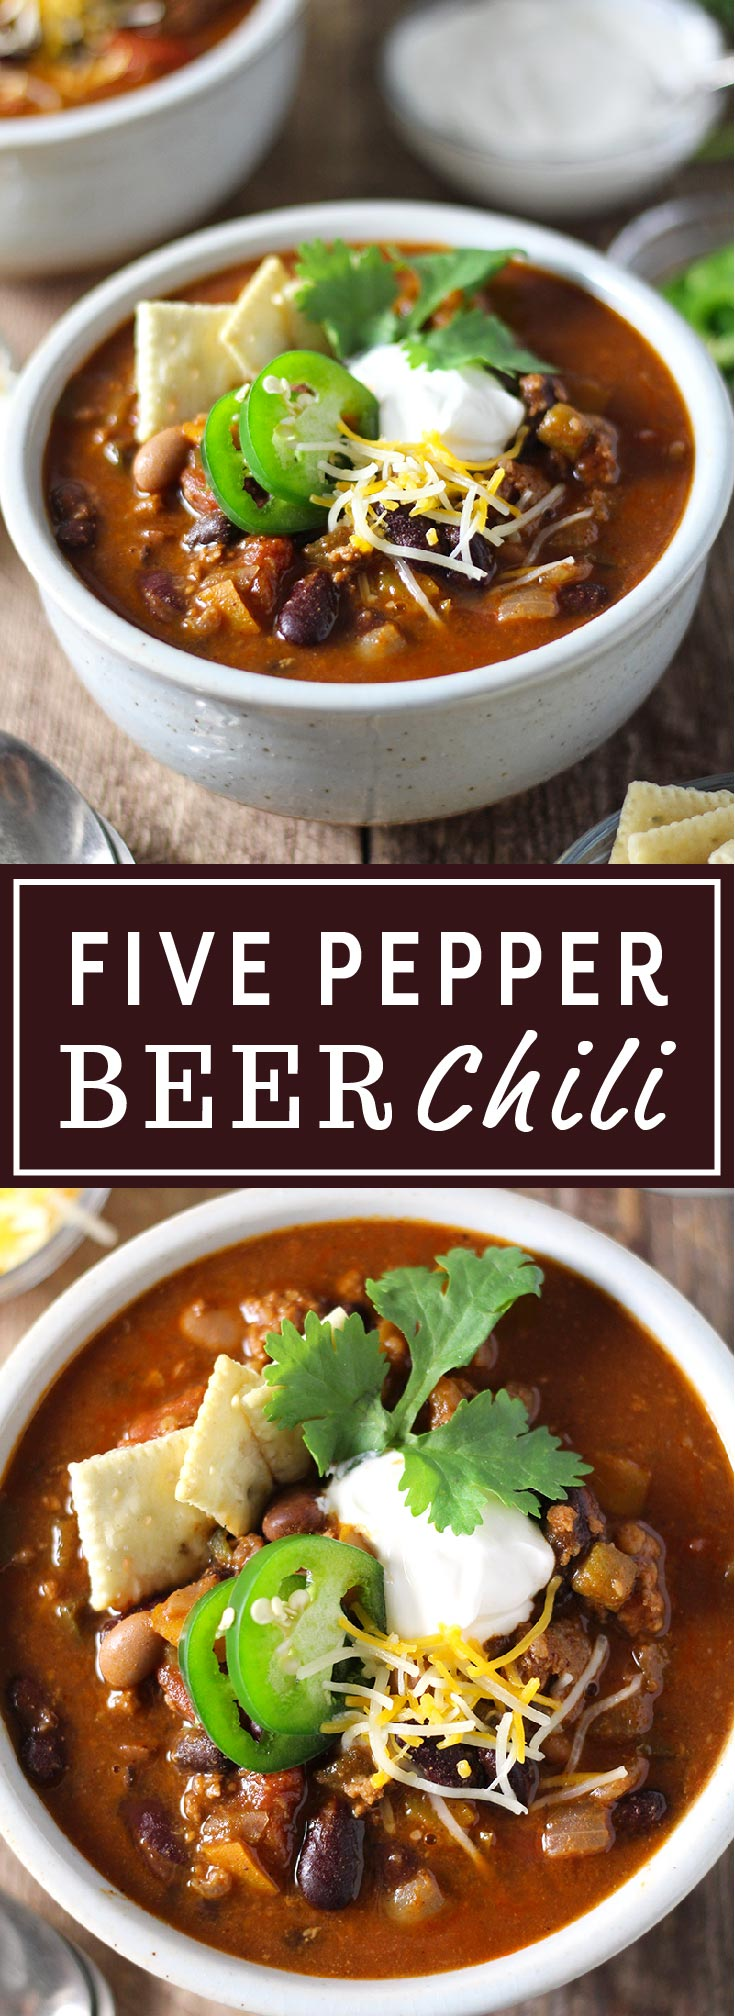 Hearty, easy-to-make chili with a kick! Made with a full can of beer and homemade chili seasoning, loaded with five types of peppers from sweet to spicy, and packed with four types of beans and ground beef.